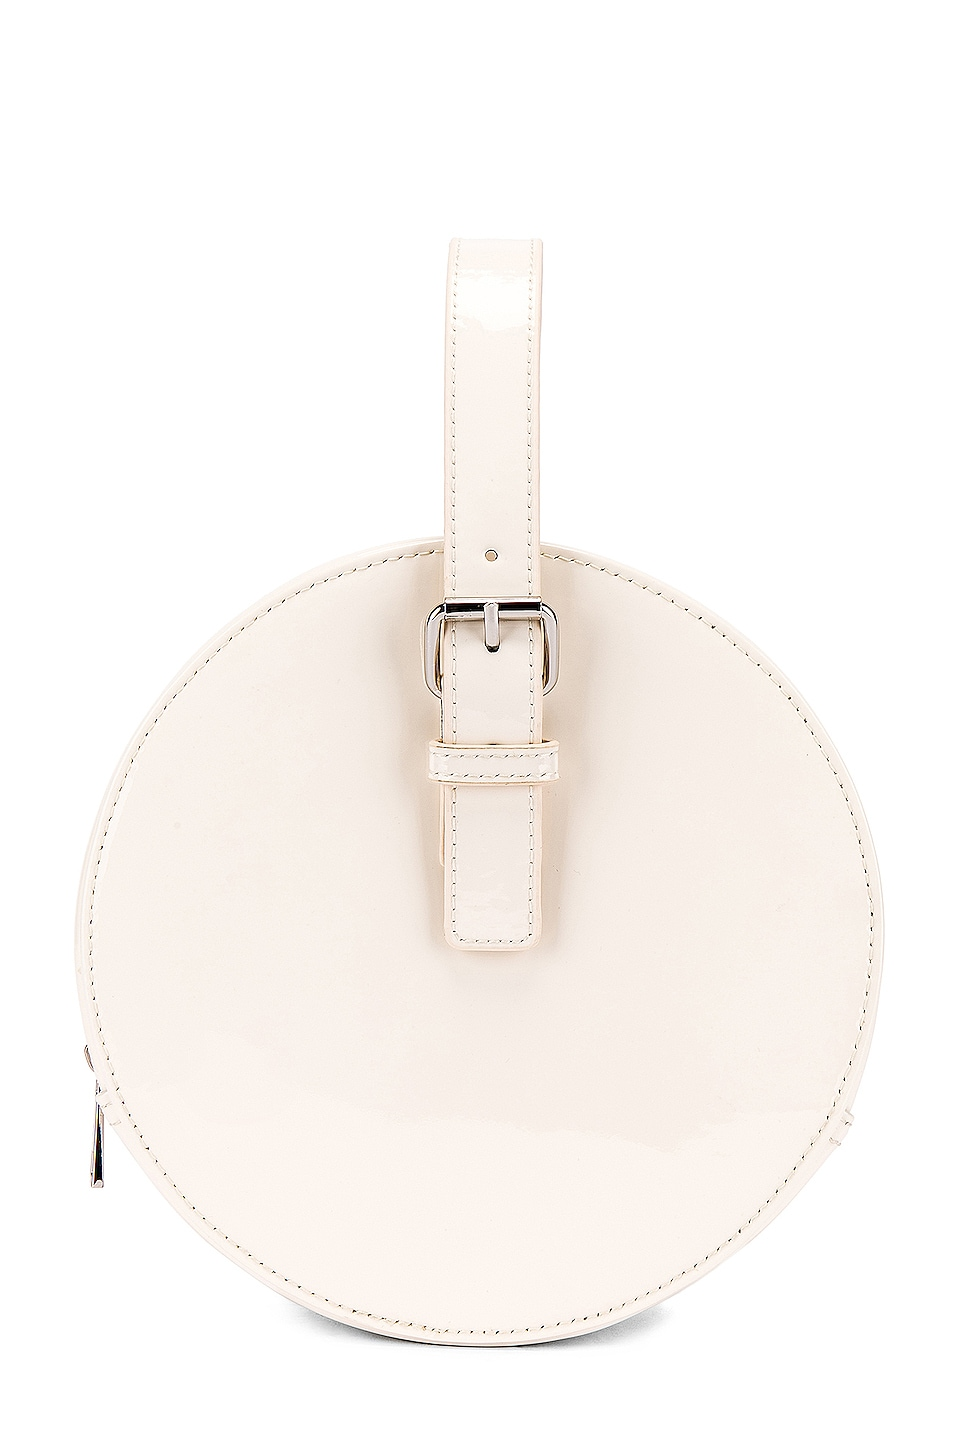 L'Academie Aoife Circle Bag in Bone